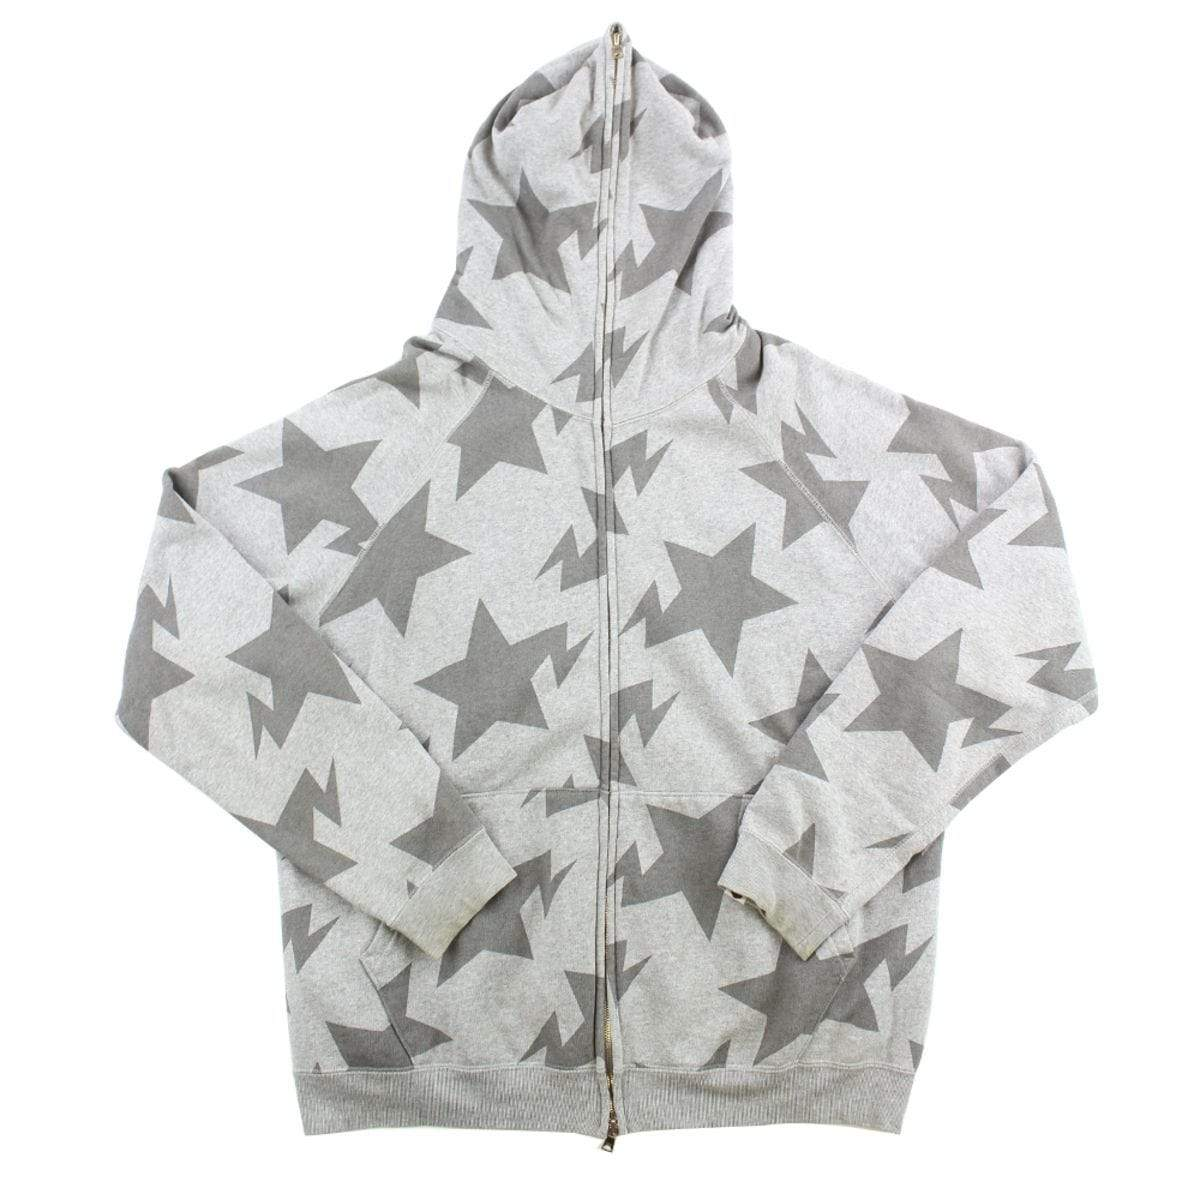 Bape Bapesta All Over Print Hoodie Grey - SaruGeneral